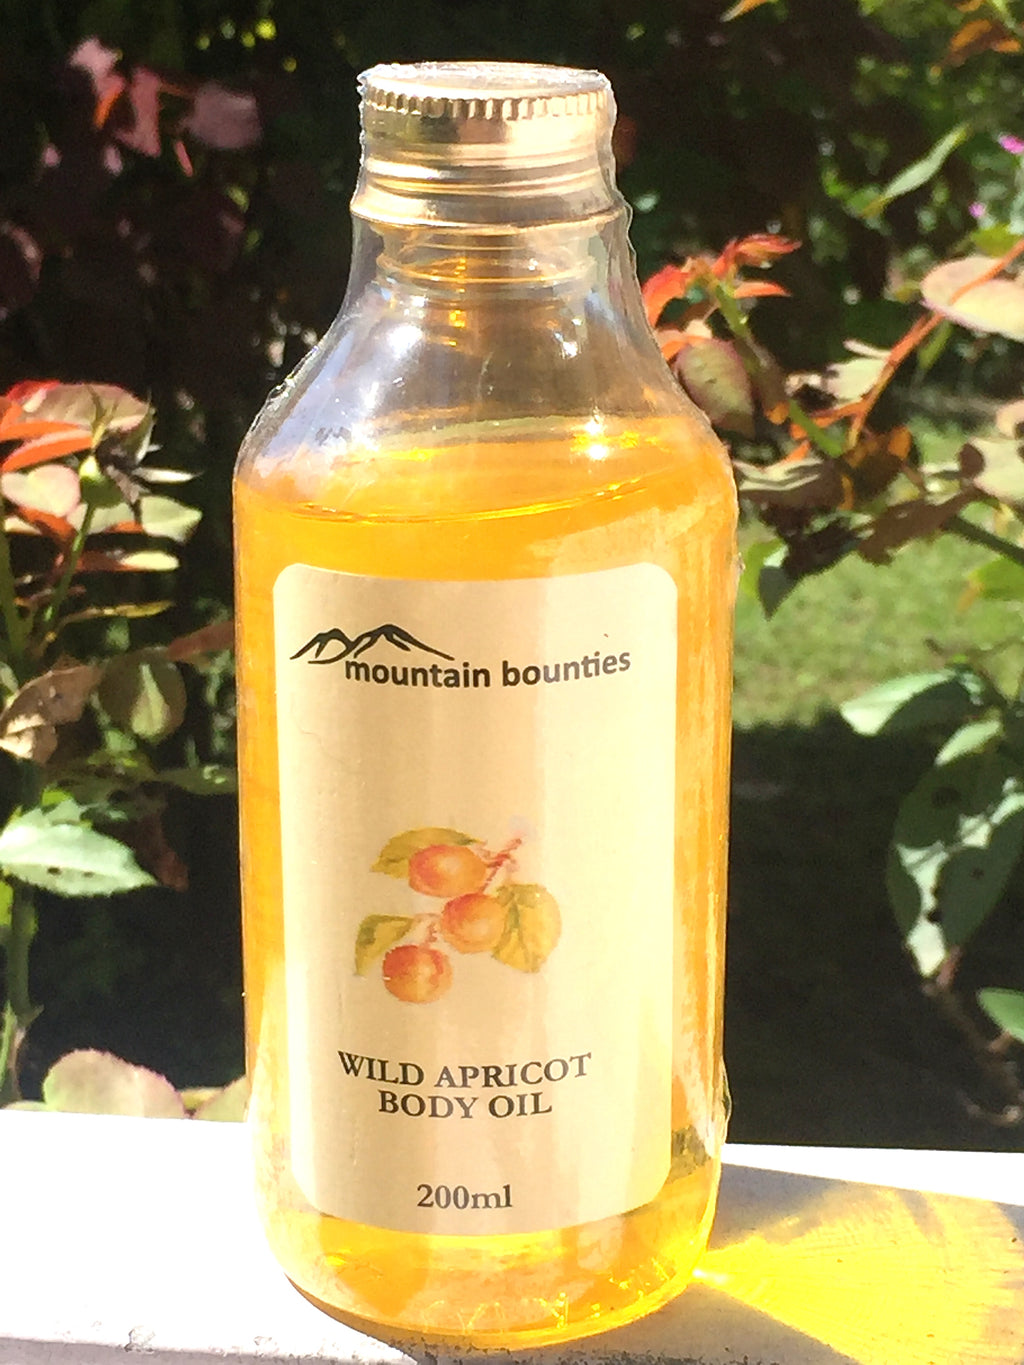 Wild Apricot Body Oil, 100% natural, handmade